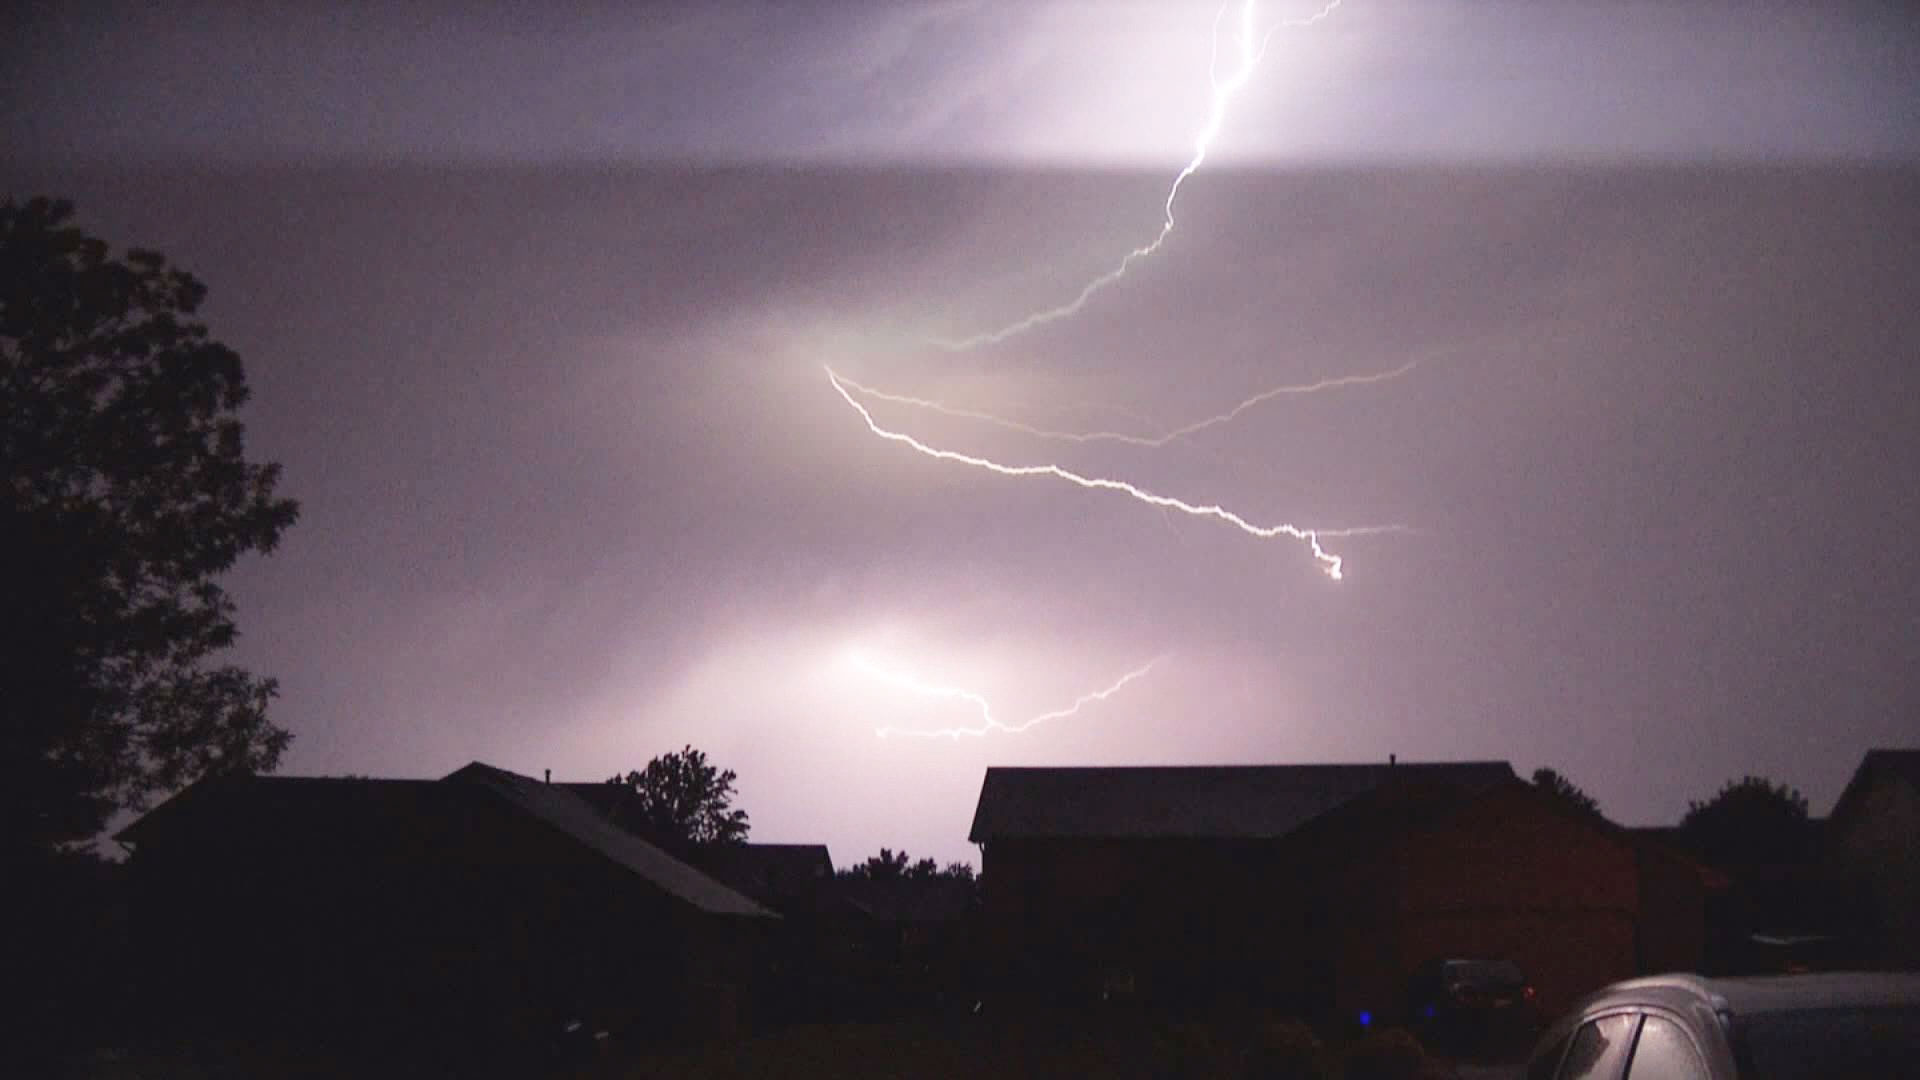 KELO Lightning Severe Weather